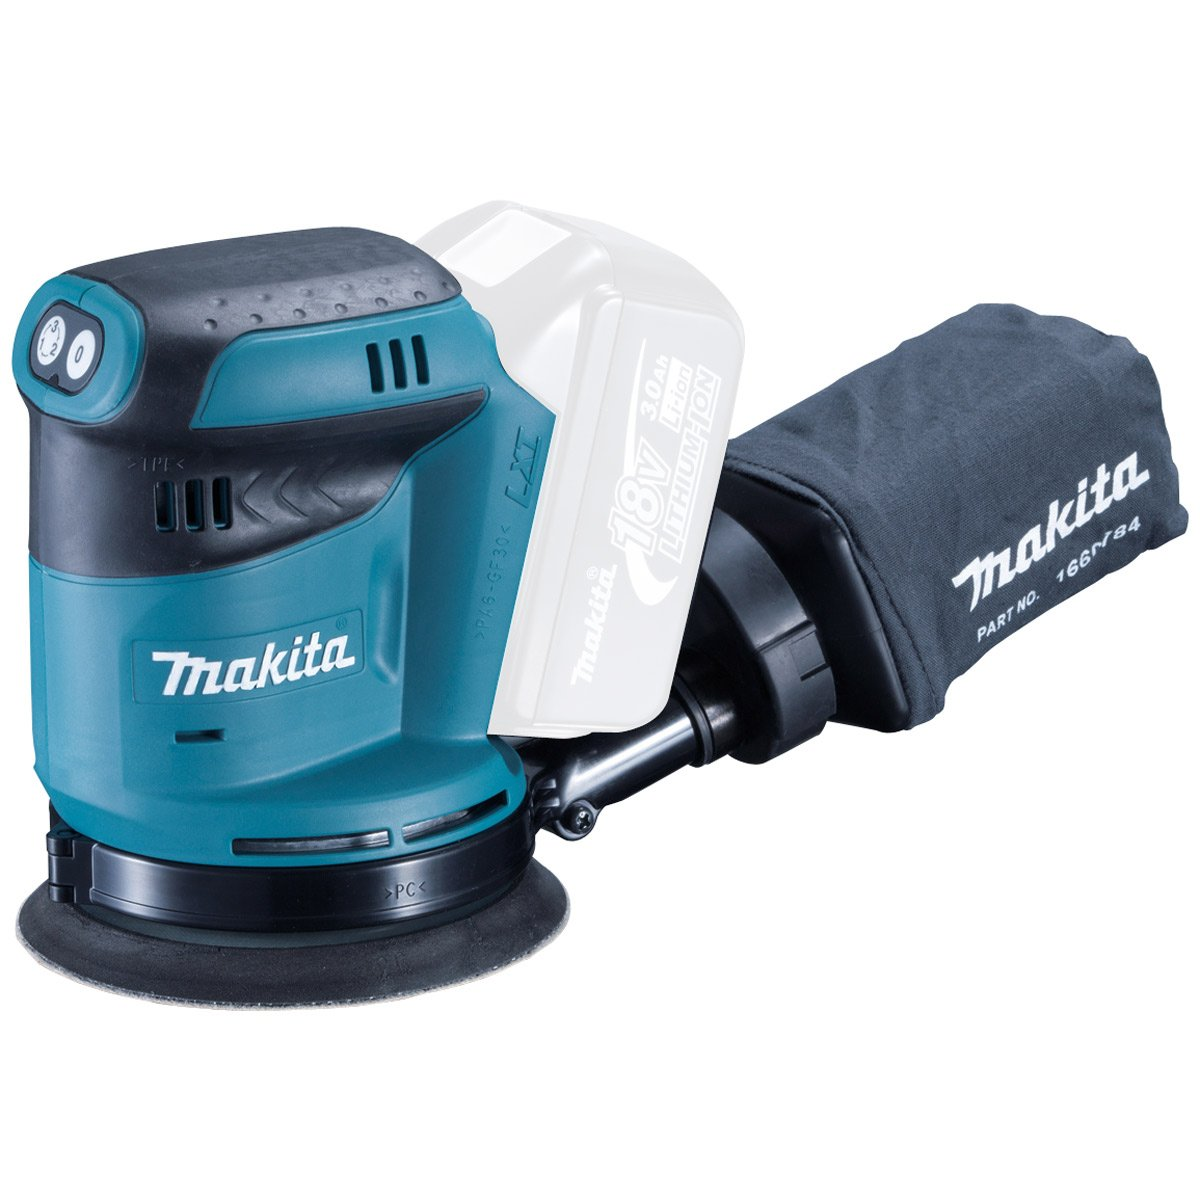 Makita DBO140Z 14.4V Li-ion LXT Random Orbit Sander, No Batteries Included